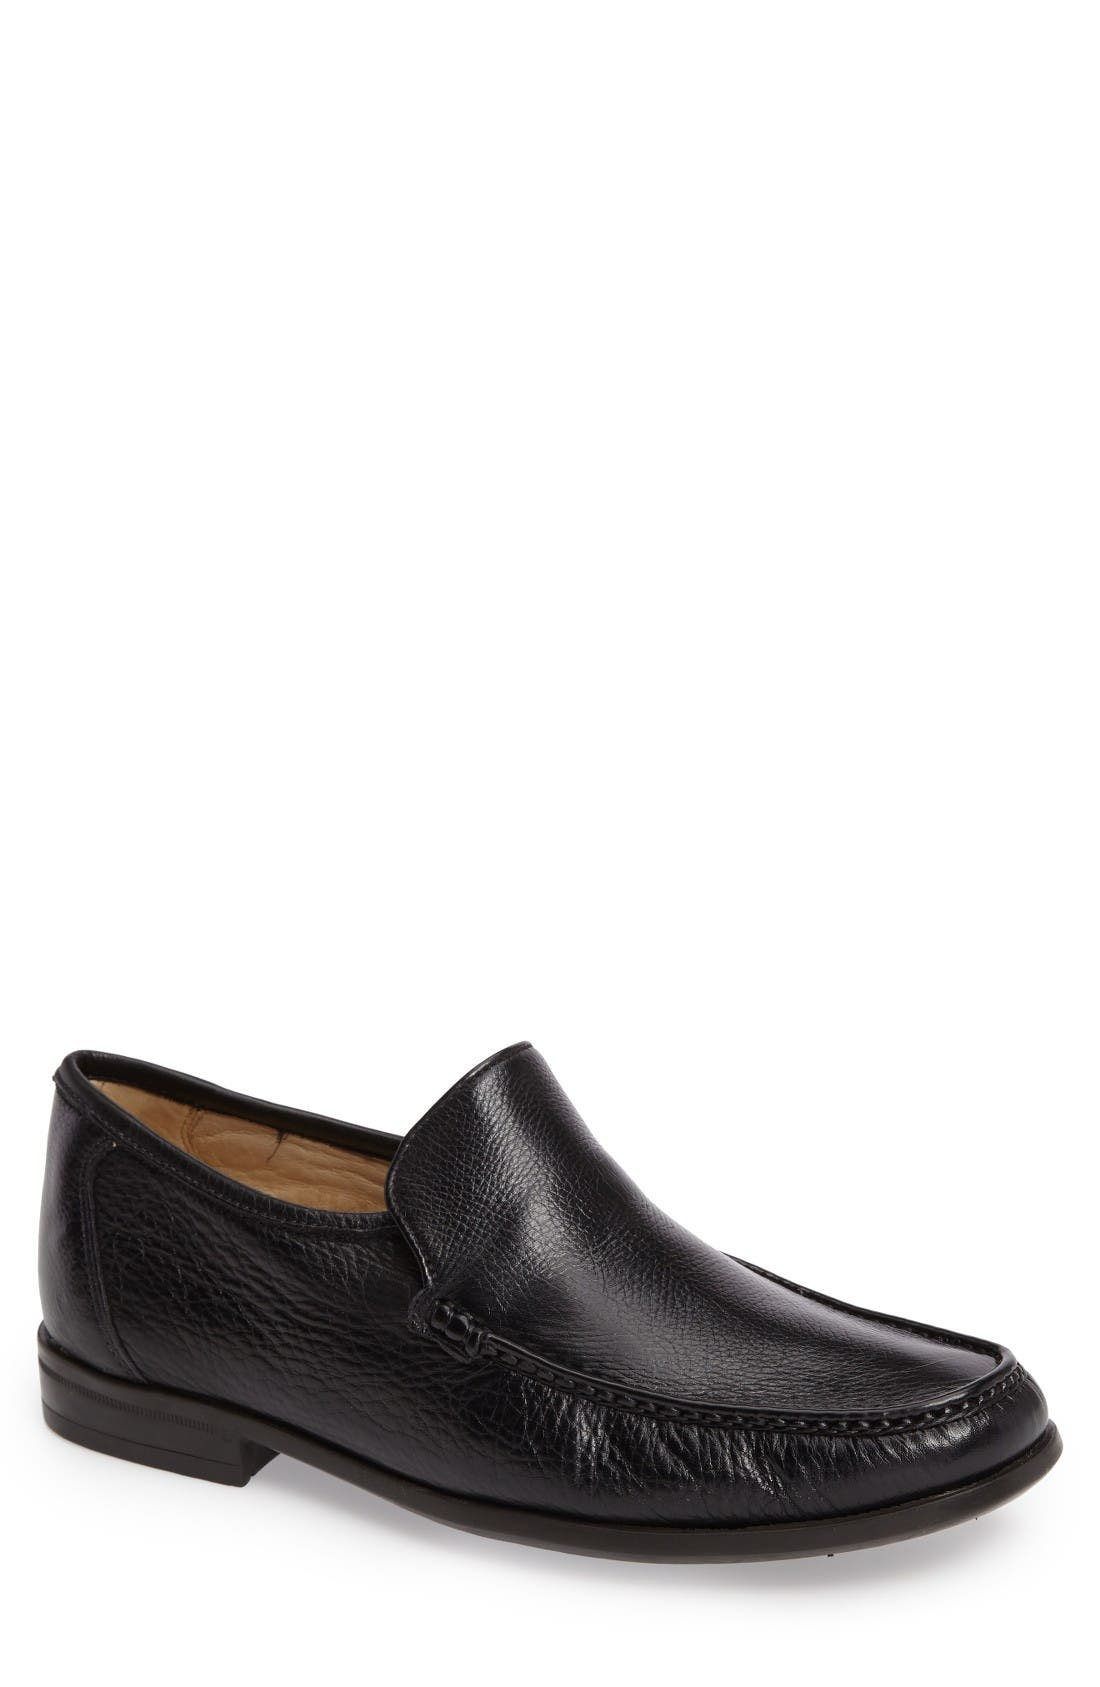 Anatomic & Co. Torres Loafer (Men)